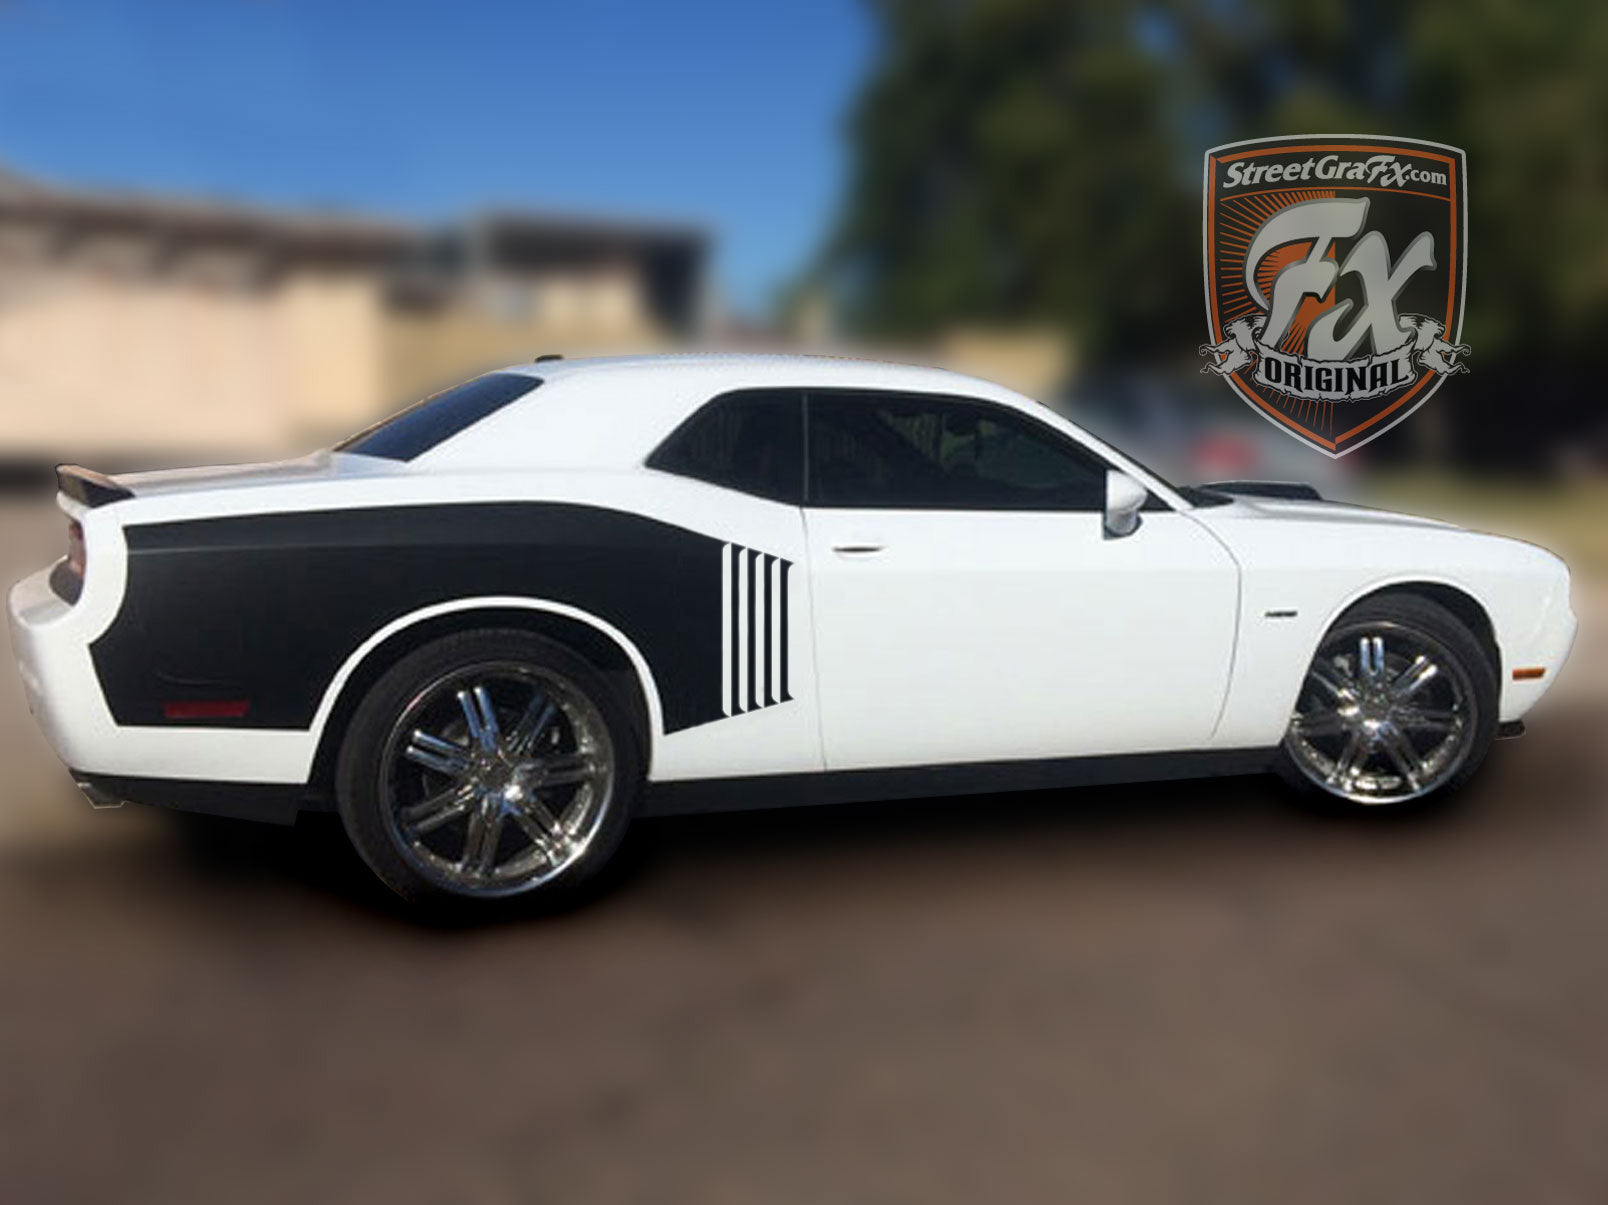 2010 Dodge Challenger For Sale >> Dodge Challenger Stripes, Racing Stripes, R/T Graphics – streetgrafx